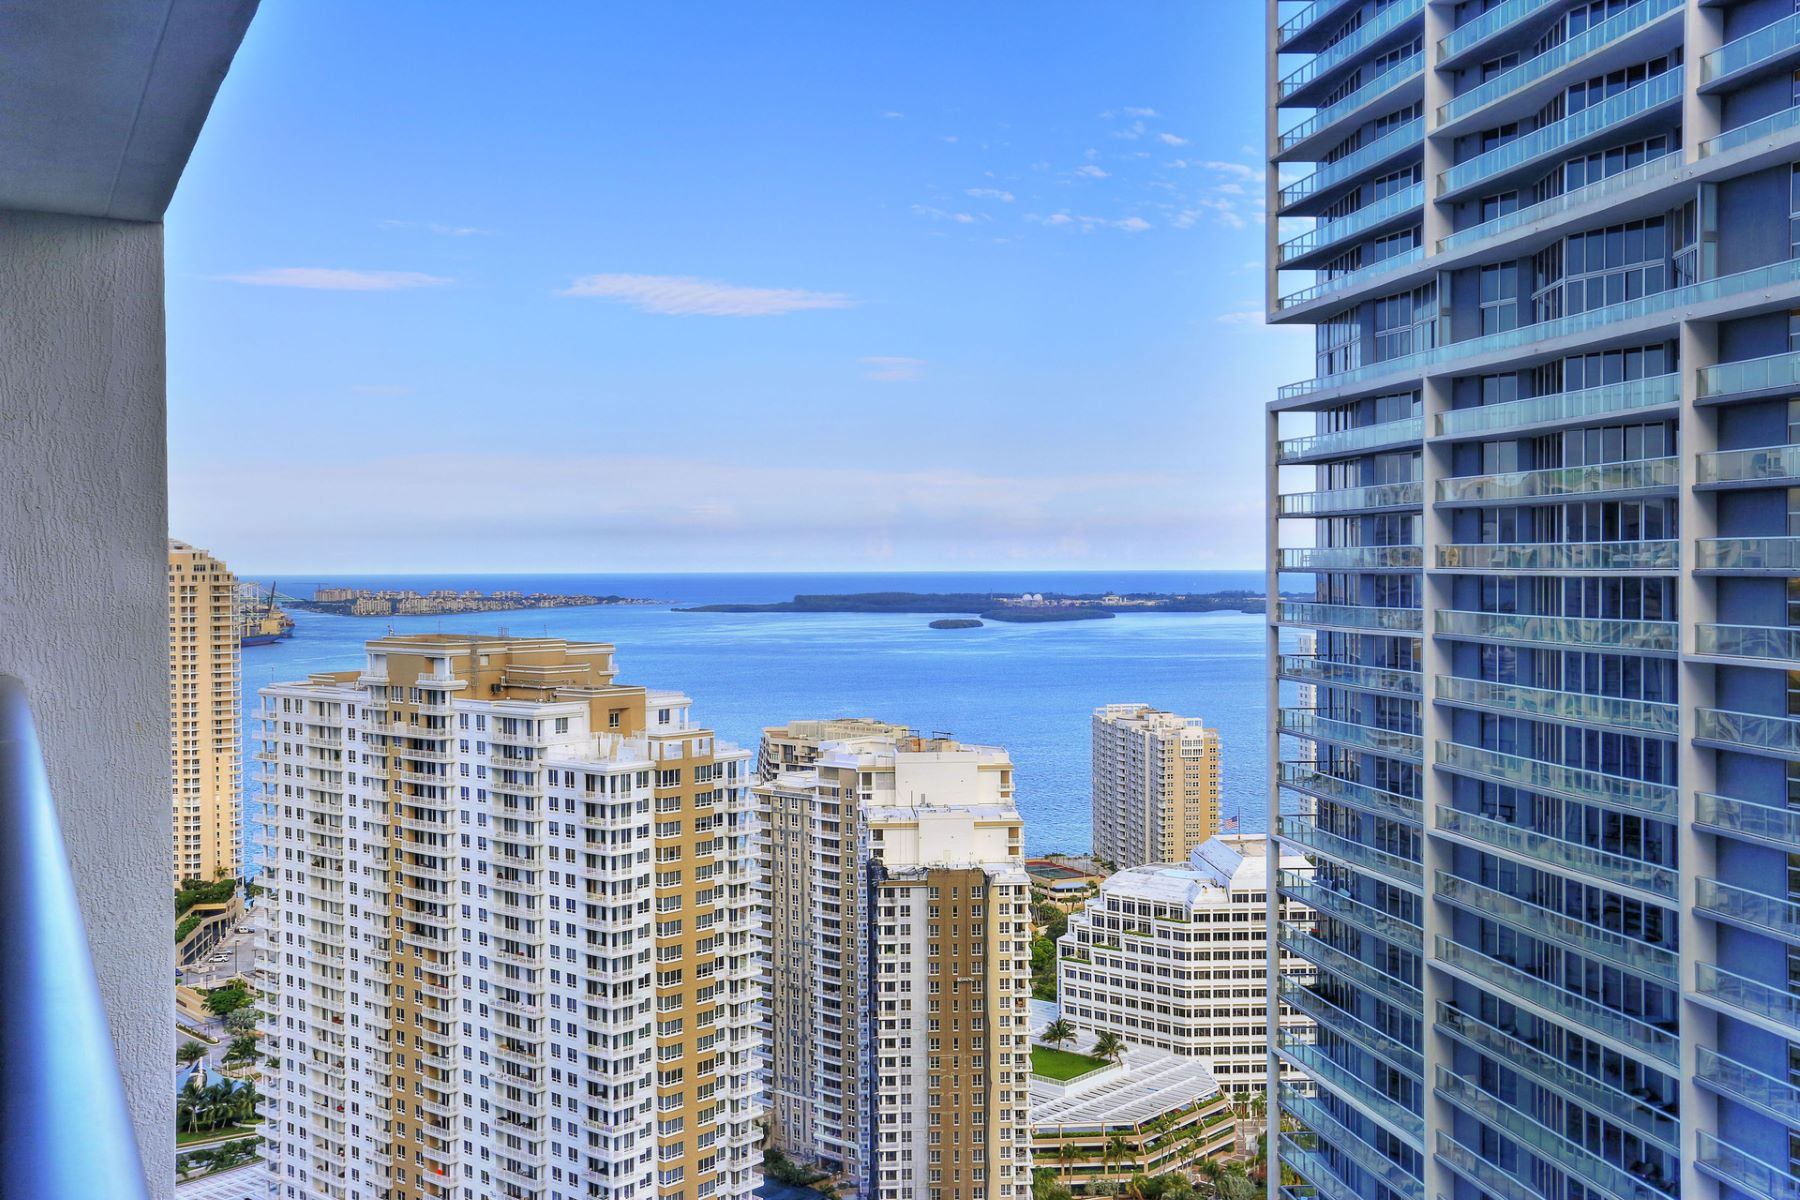 Condominium for Sale at 475 Brickell Ave #3713 475 Brickell Ave 3713 Miami, Florida, 33131 United States